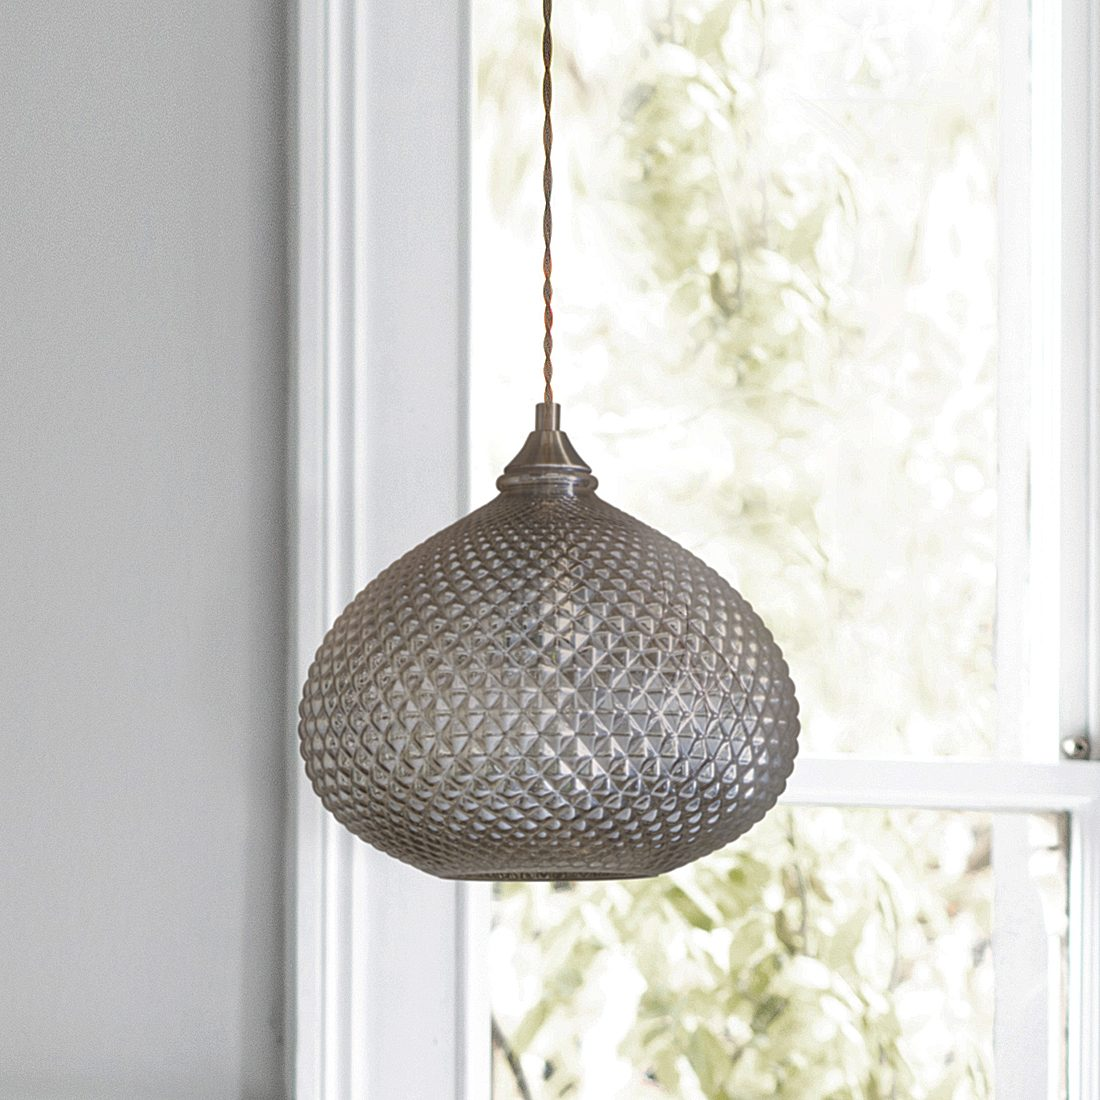 Decorative Glass Pendant Light